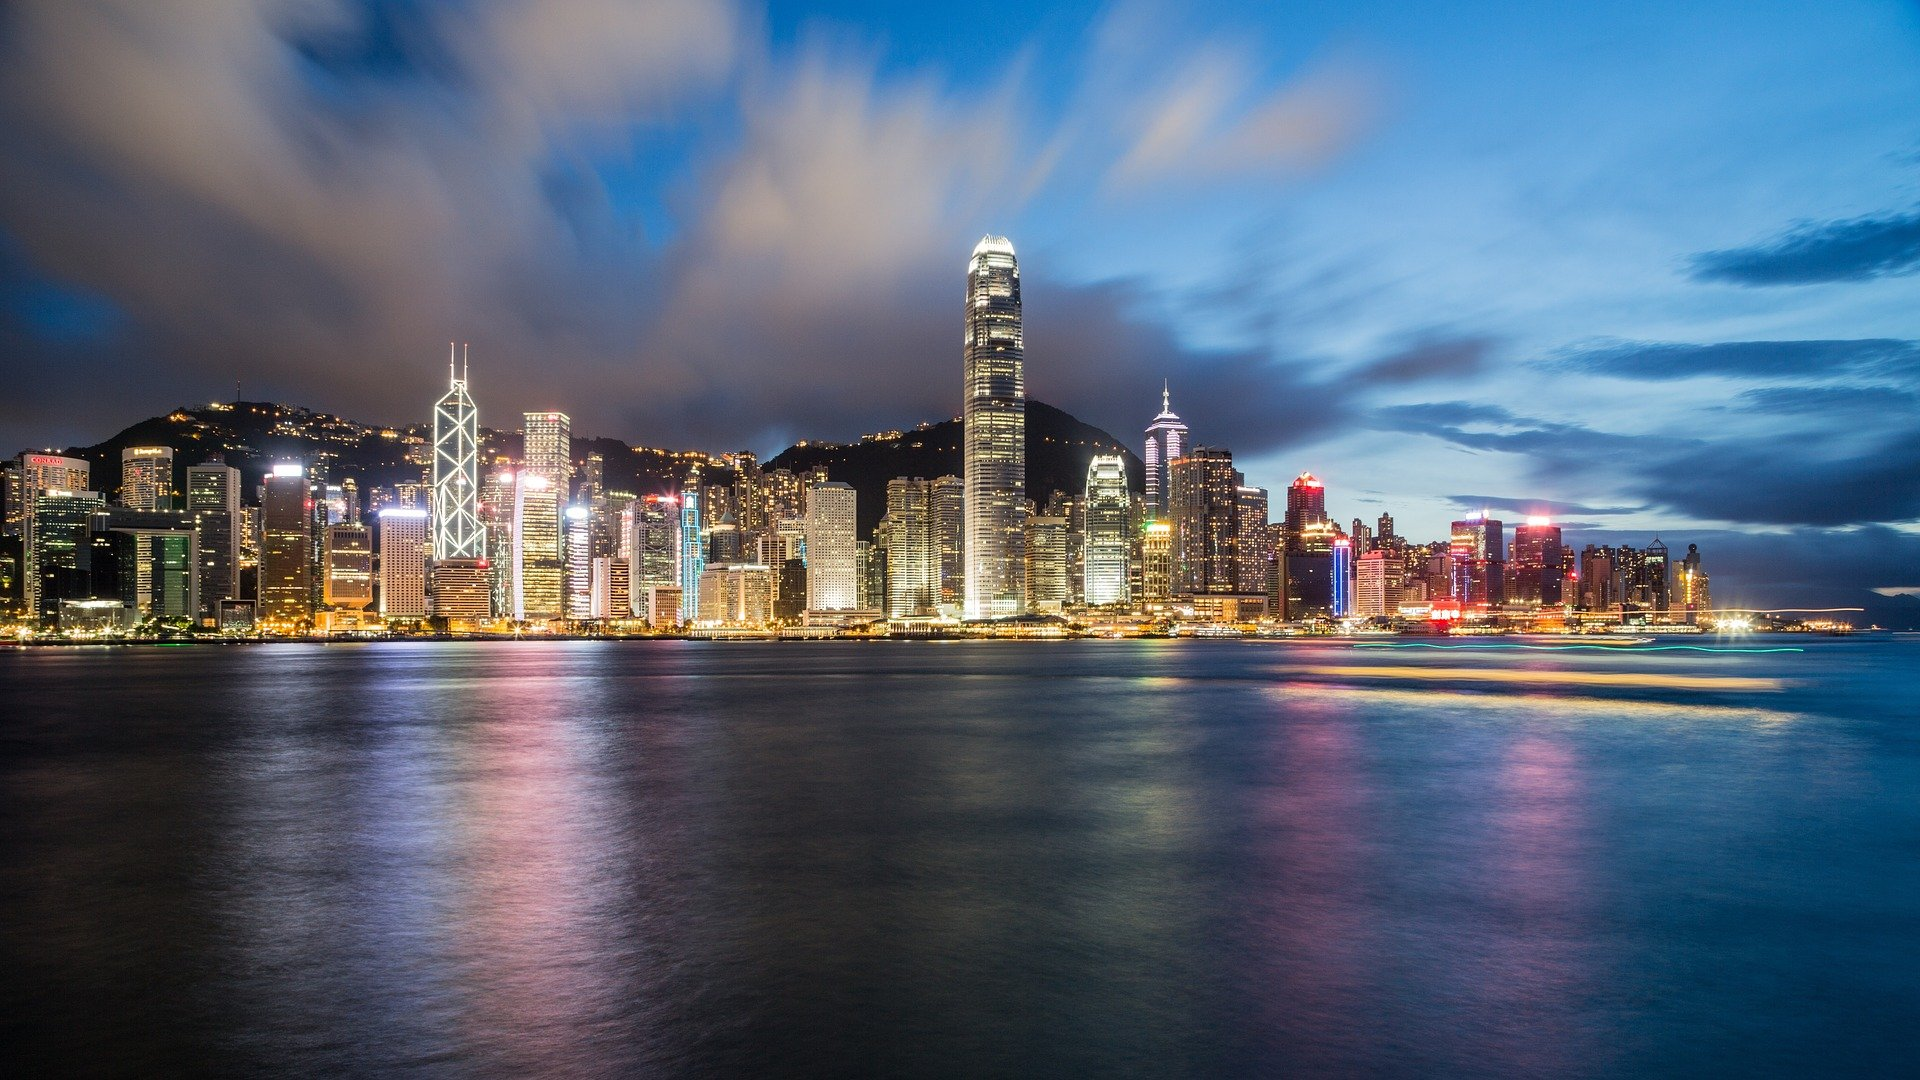 Hong Kong at night which makes it clear why it is a good idea to expand your Florida business to Hong Kong.